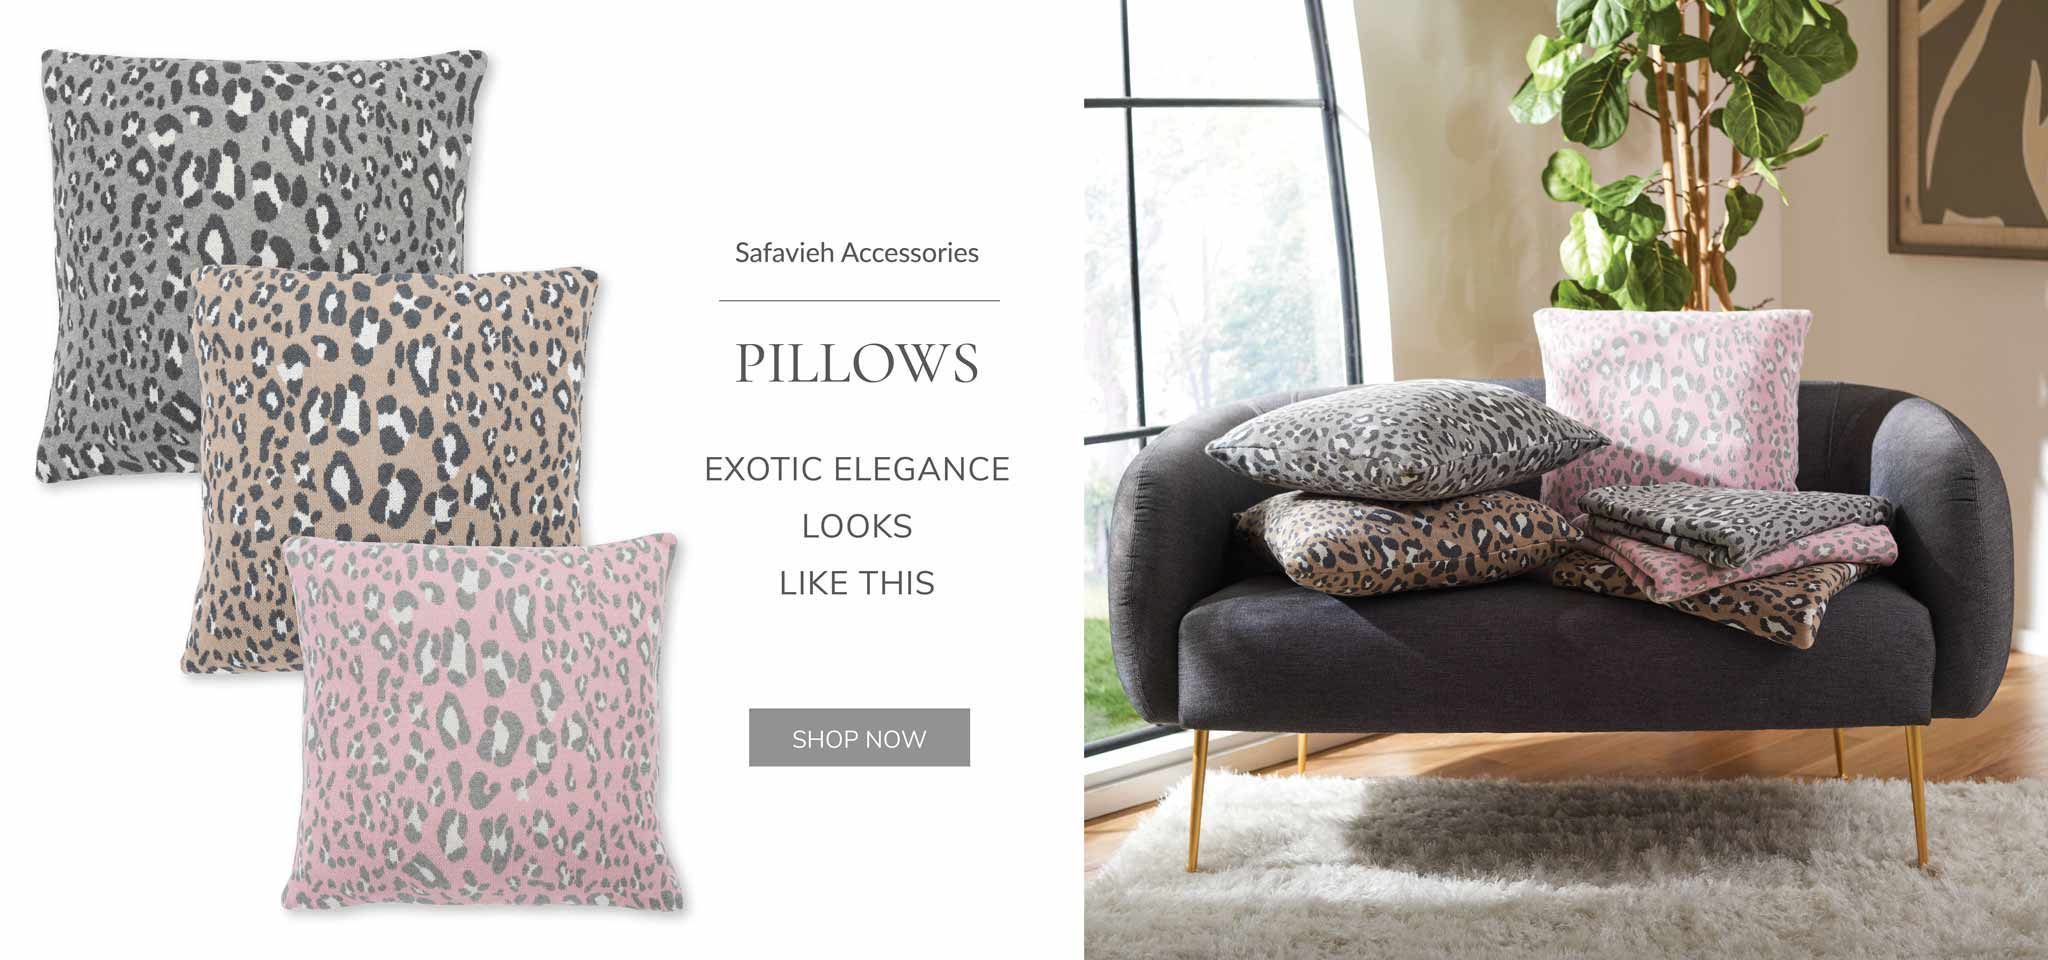 Safavieh Accessories - Pillows